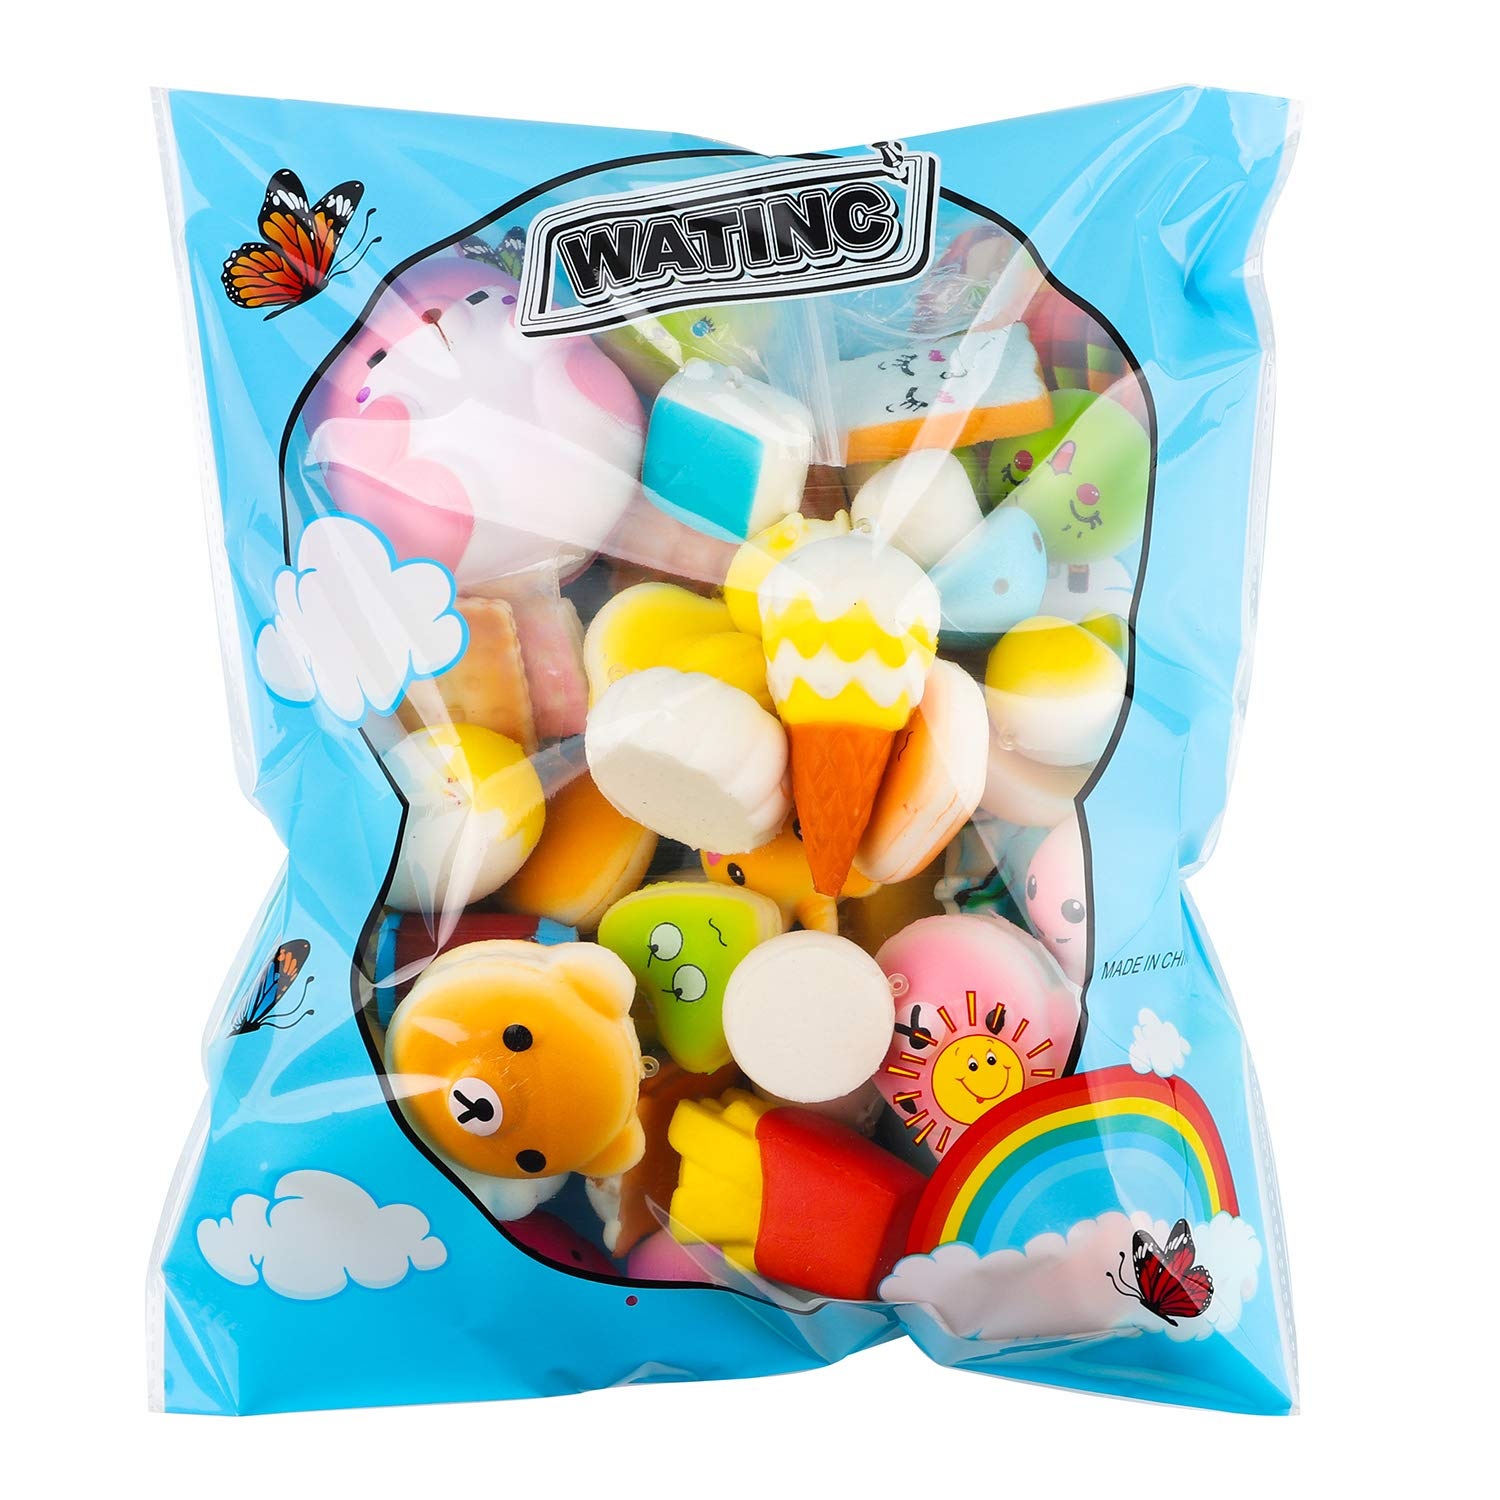 WATINC Random 70 Pcs Squishies, Birthday Gifts for Kids Party Favors, Slow Rising Simulation Bread Squishies Stress Relief Toys Goodie Bags Egg Filler, Keychain Phone Straps, 1 Jumbo Squishies include by WATINC (Image #7)